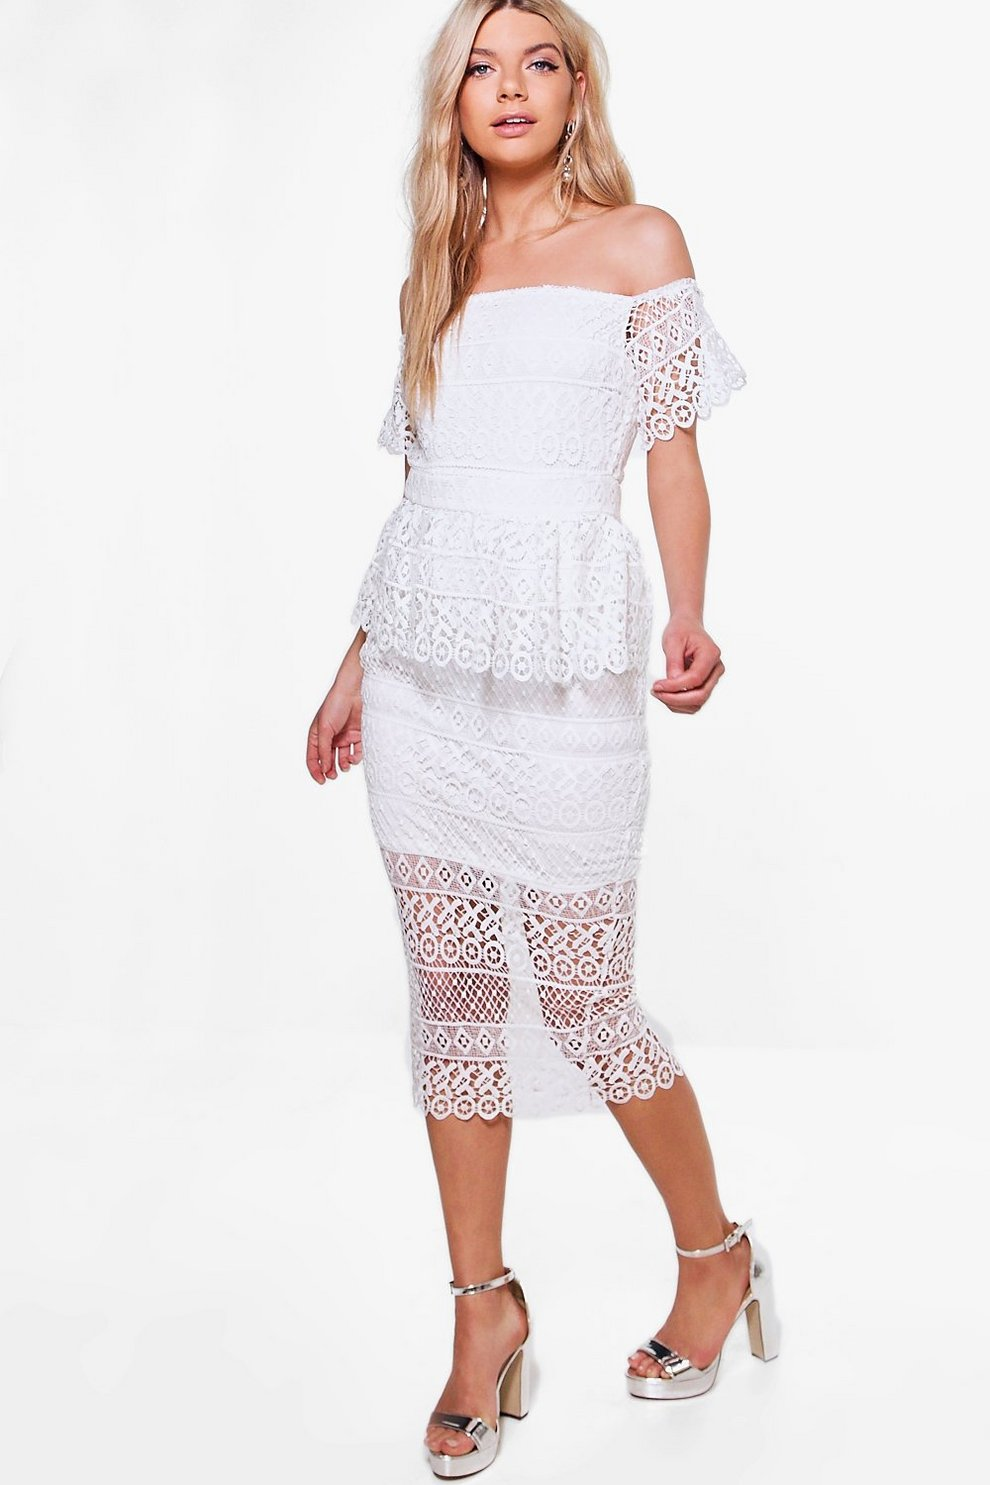 Boohoo Boutique Lace Peplum Midi Dress Free Shipping Factory Outlet Buy Cheap 2018 New Sale View Wiki Cheap Online xDmzNgm